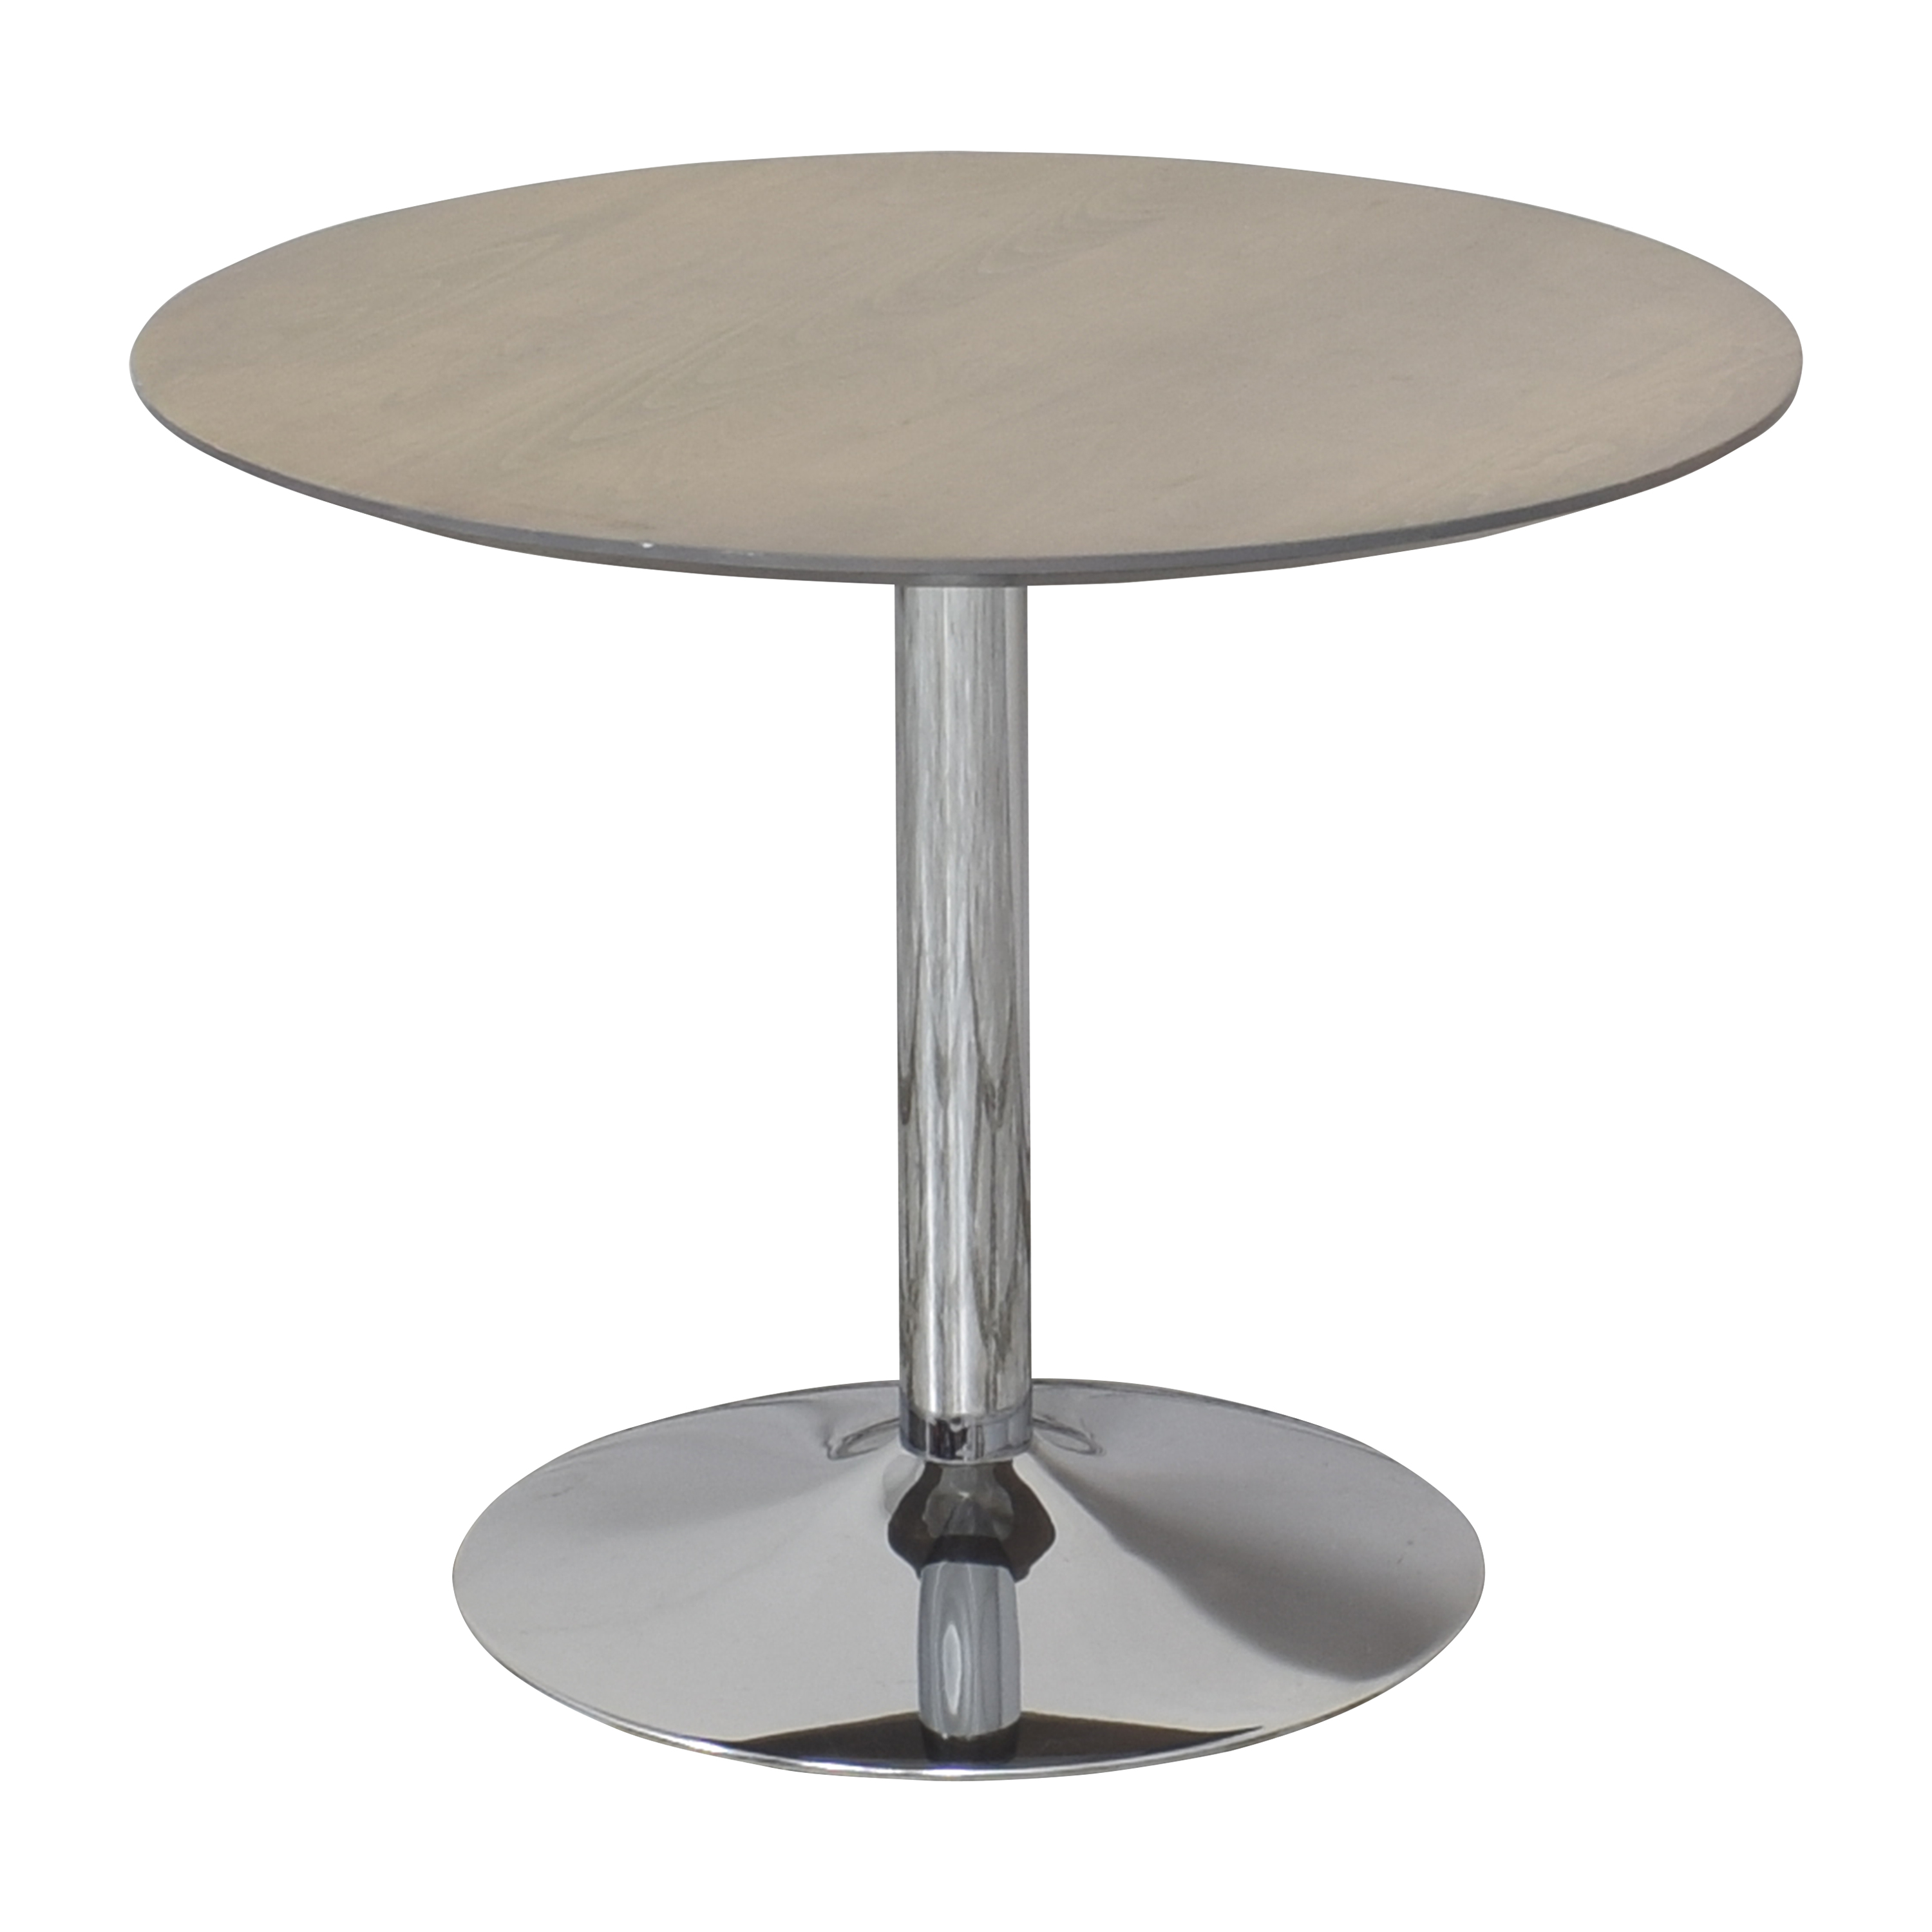 buy Room & Board Aria Round Dining Table Room & Board Dinner Tables